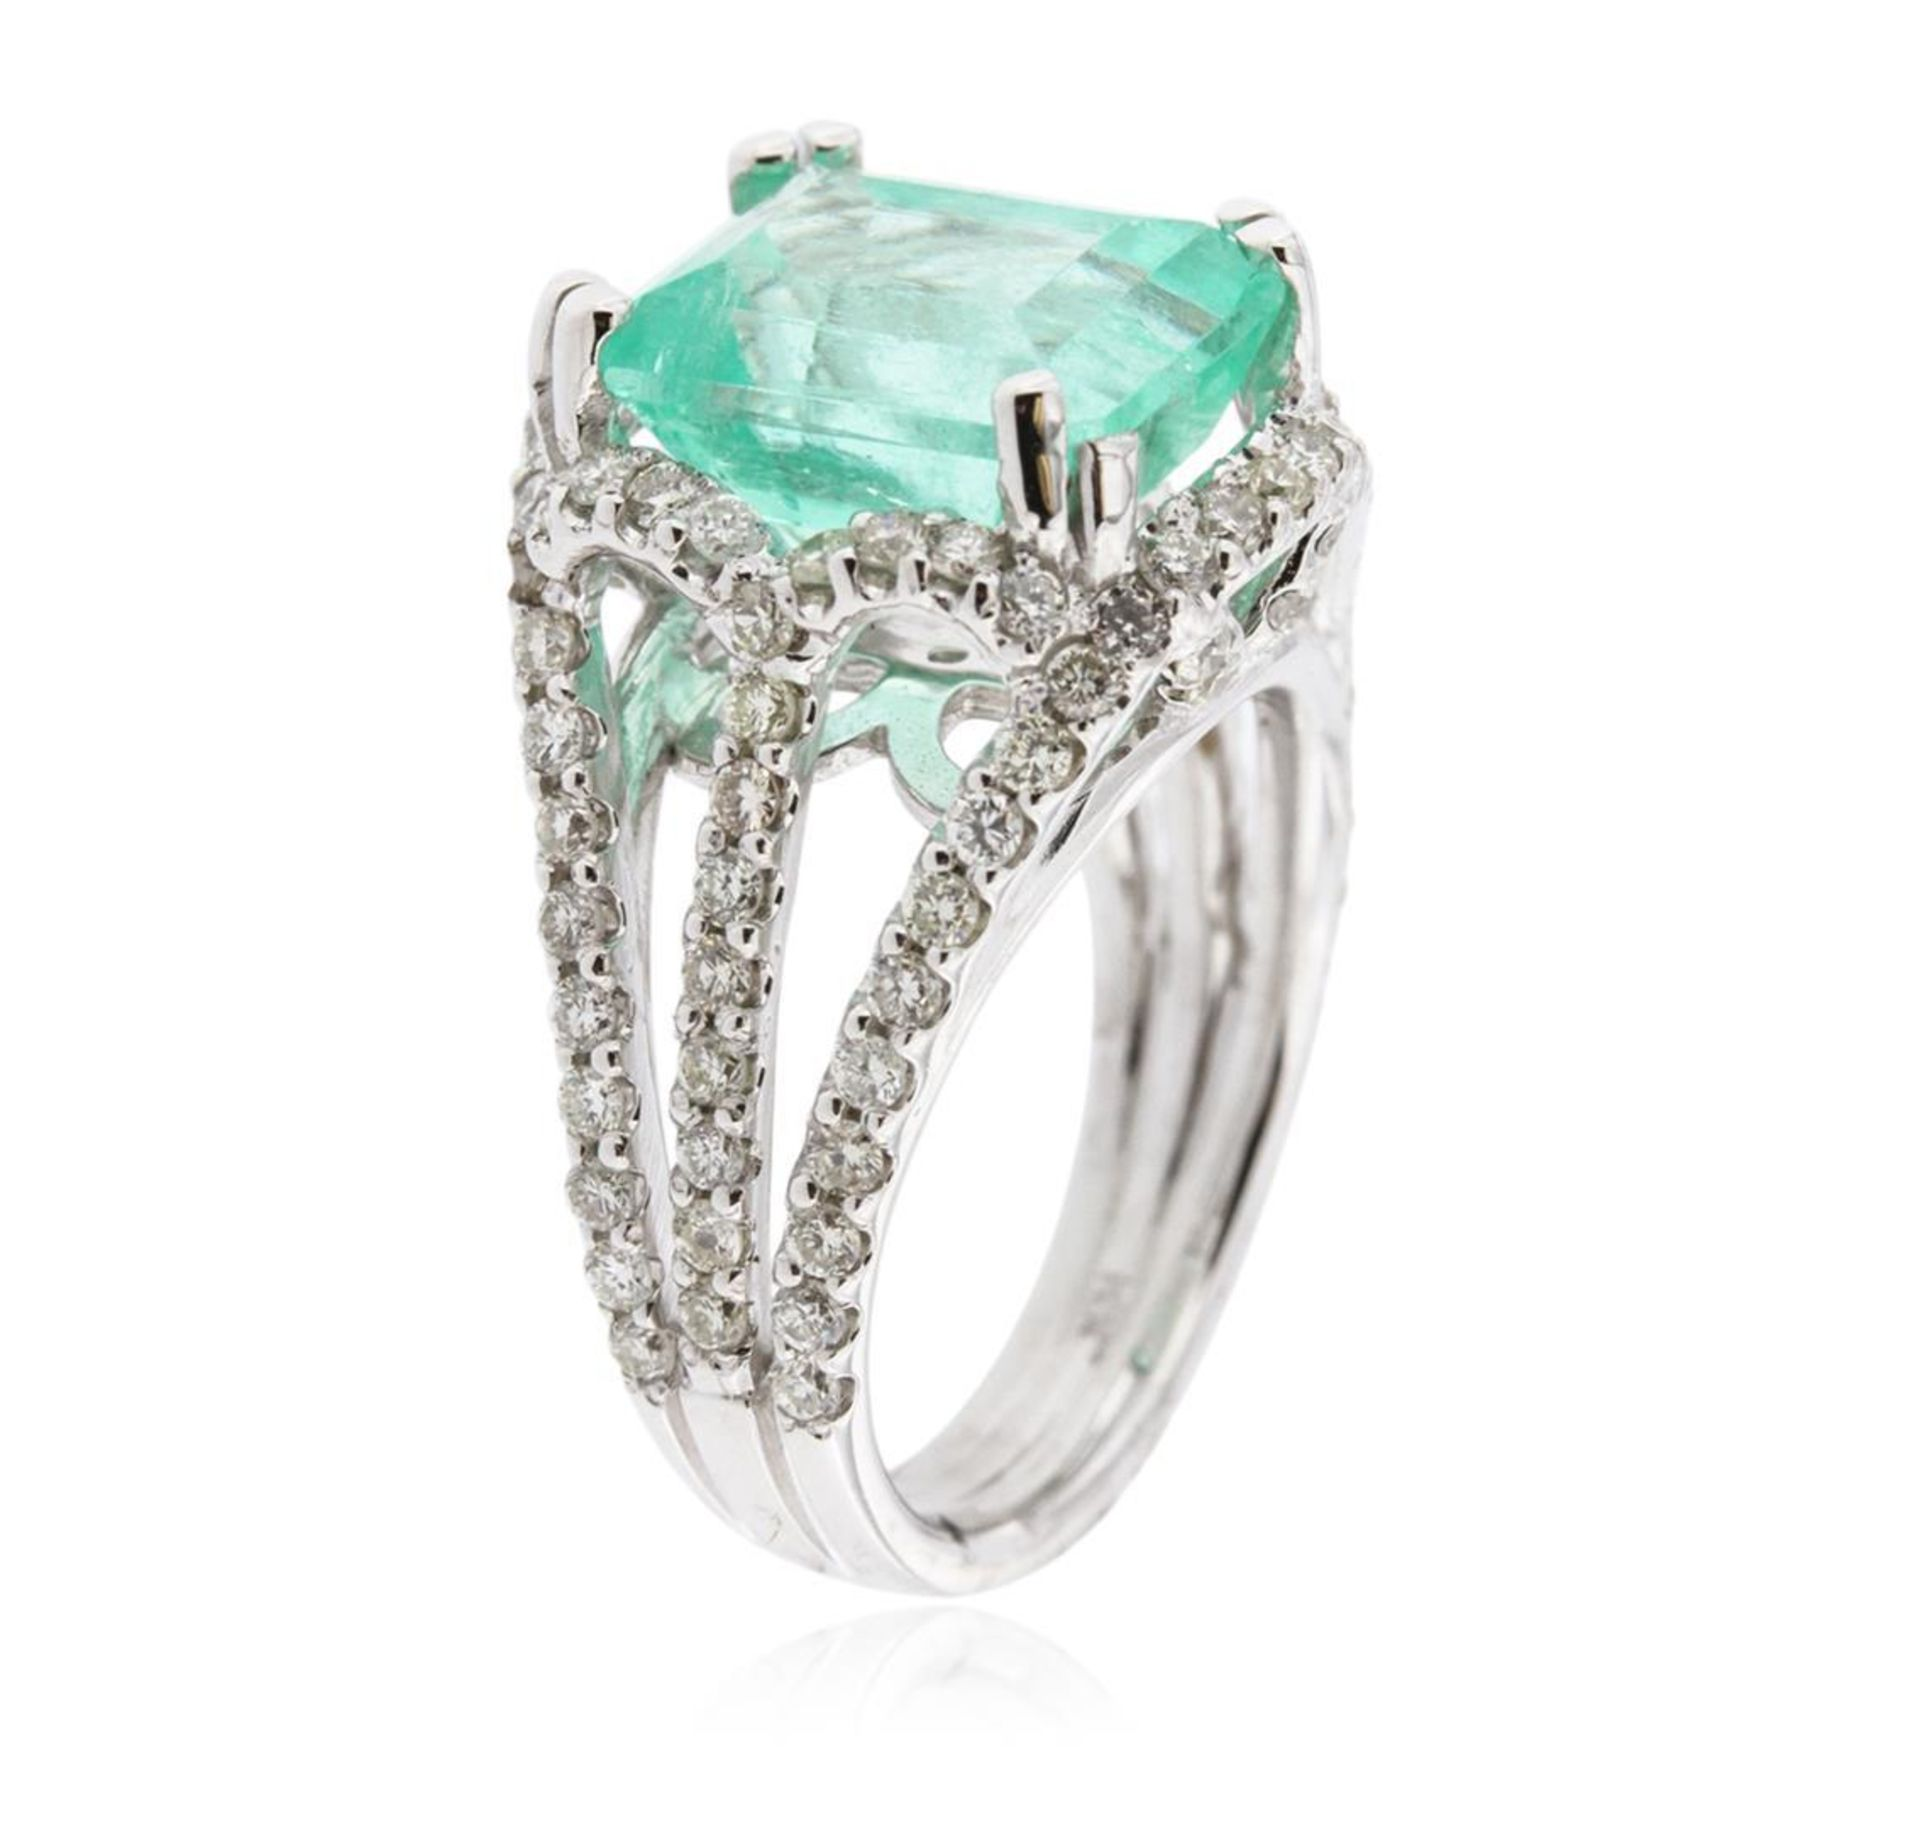 14KT White Gold 5.58ct Emerald and Diamond Ring - Image 3 of 4